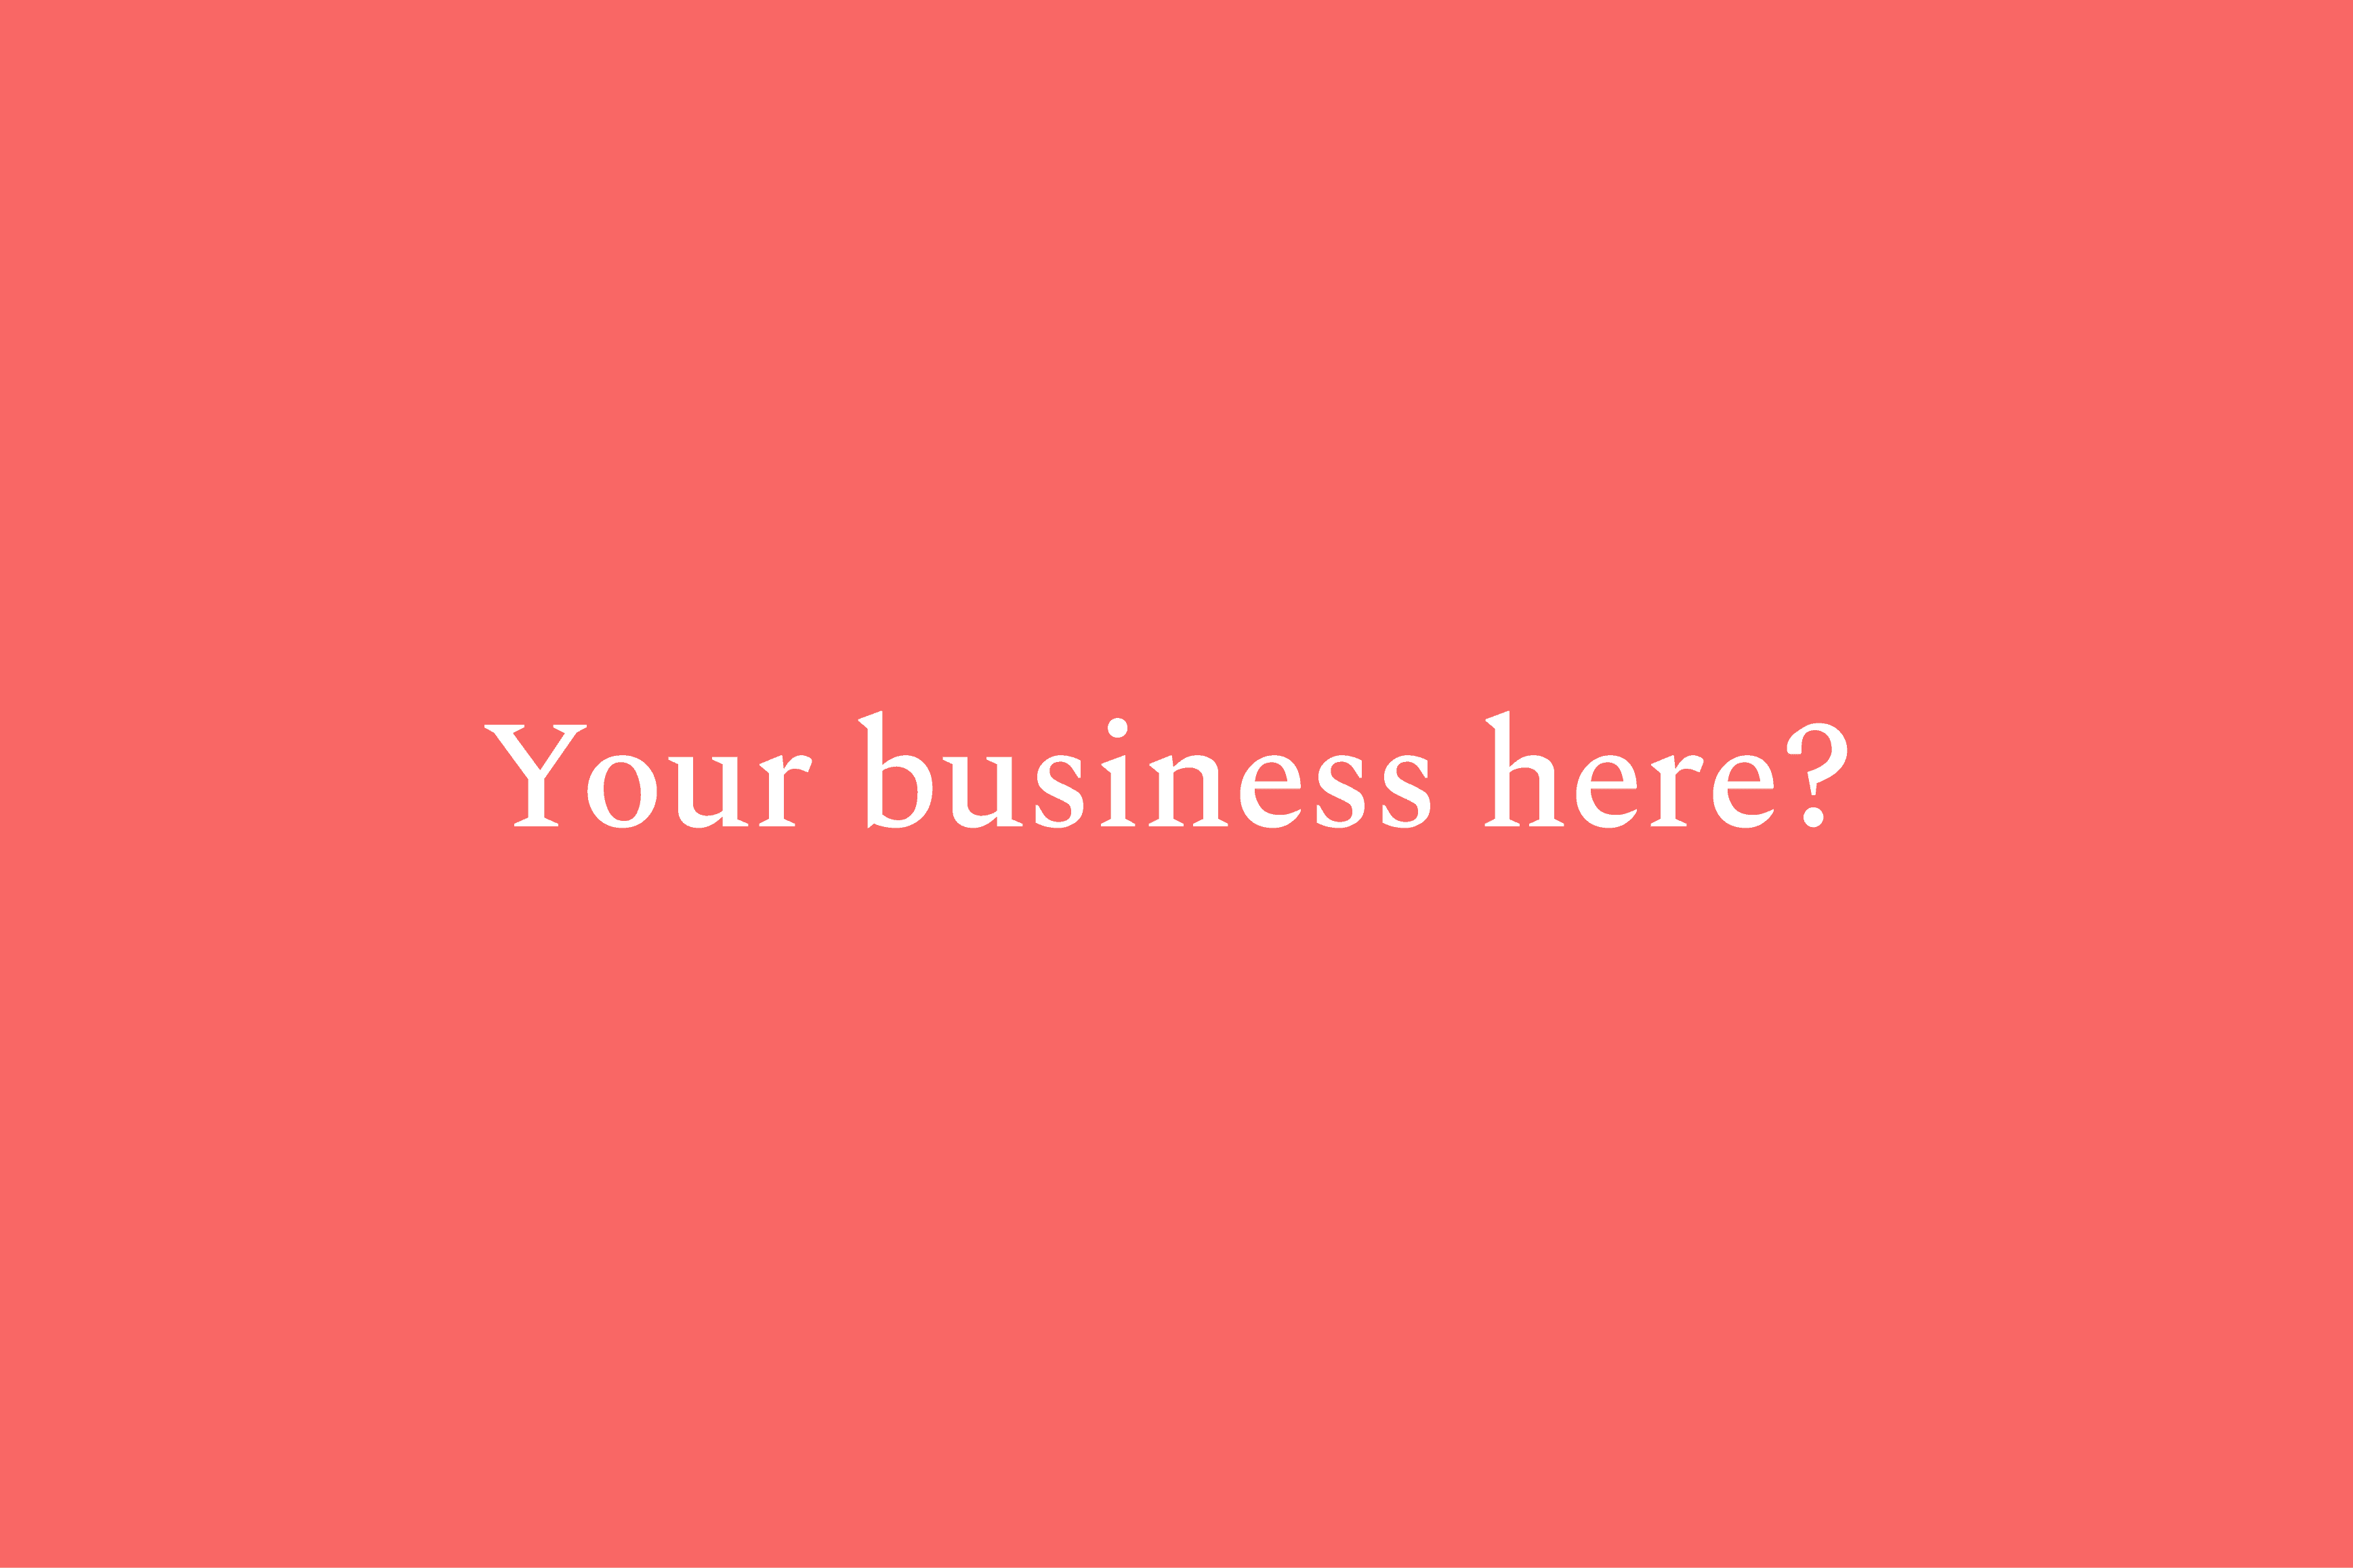 yourbusinesshere